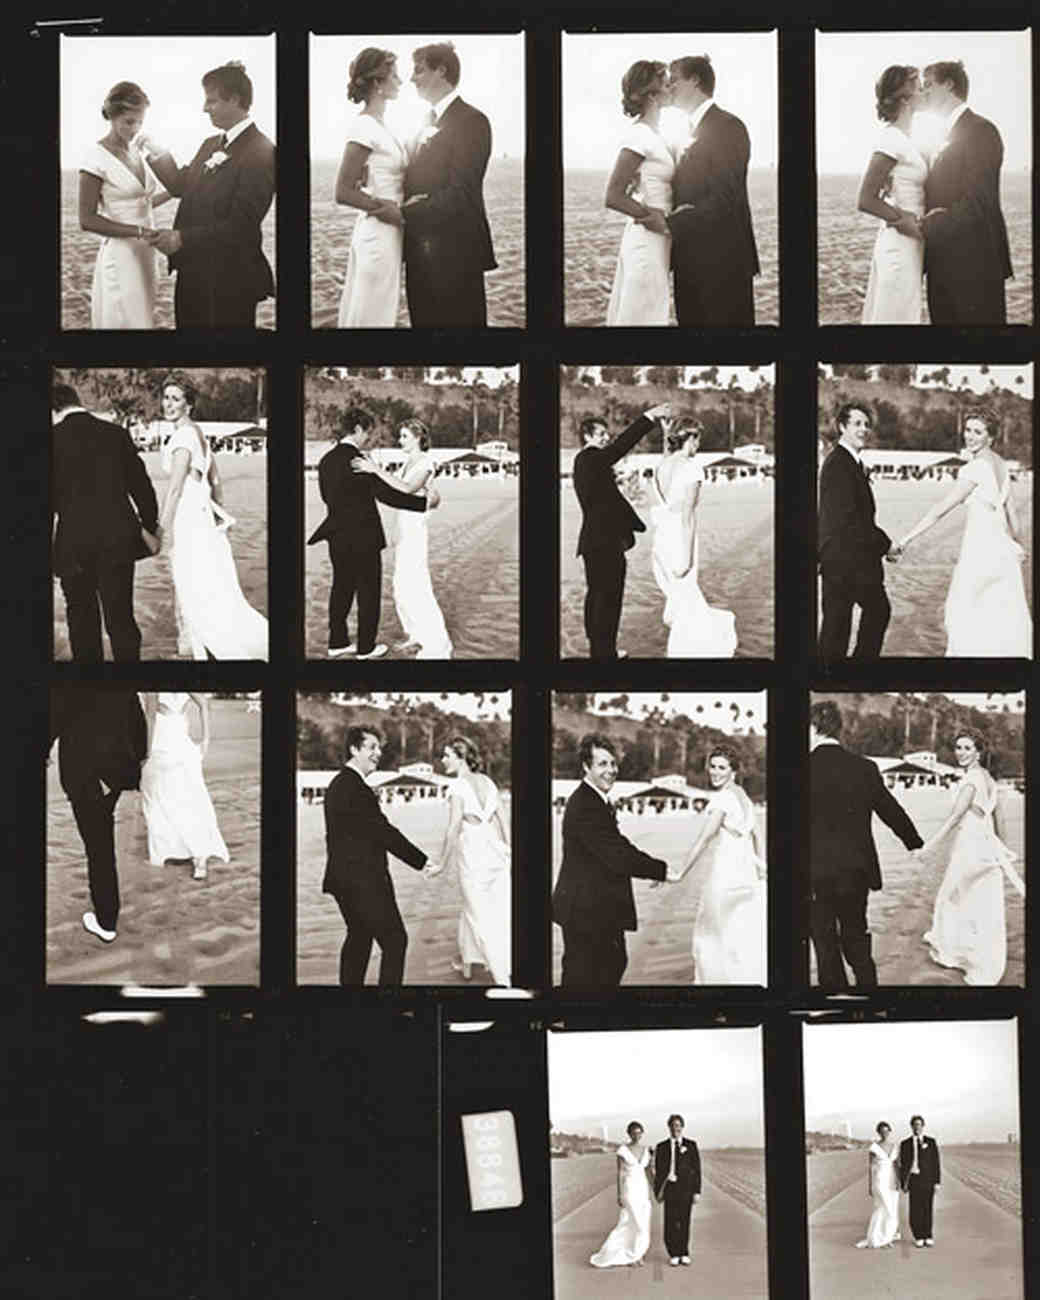 mws1737_spr09_contact_sheet_1.jpg